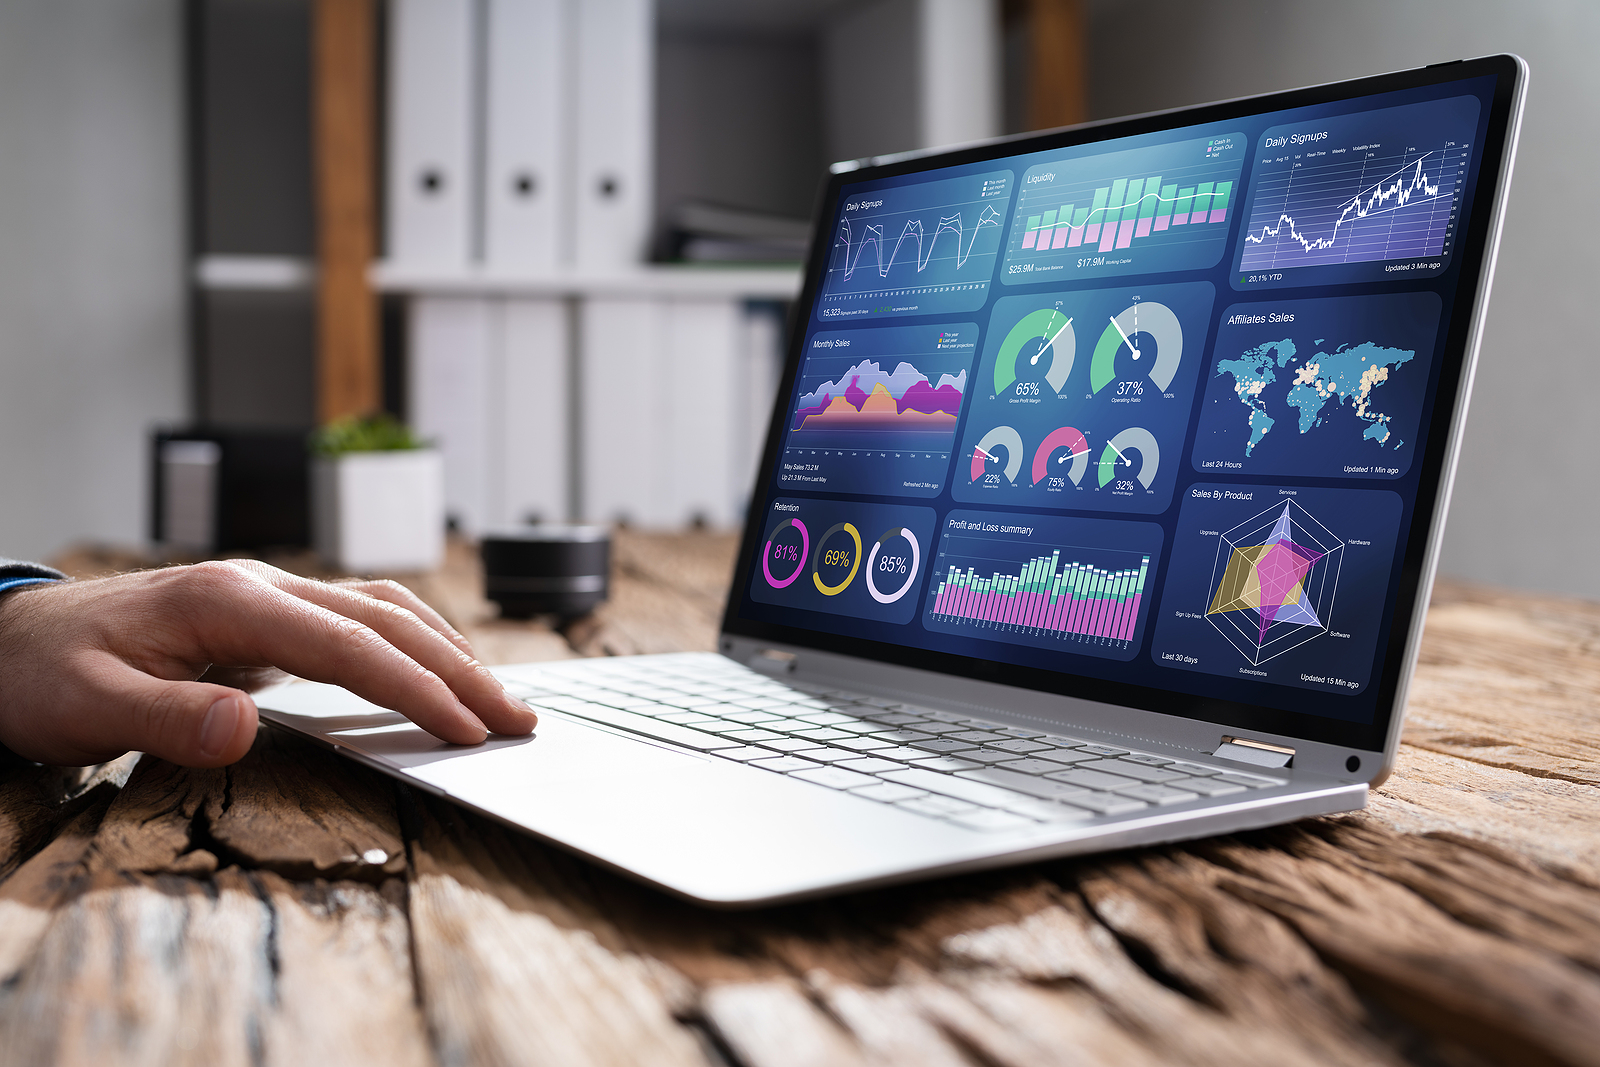 Every Small Business Needs These Tech Tools